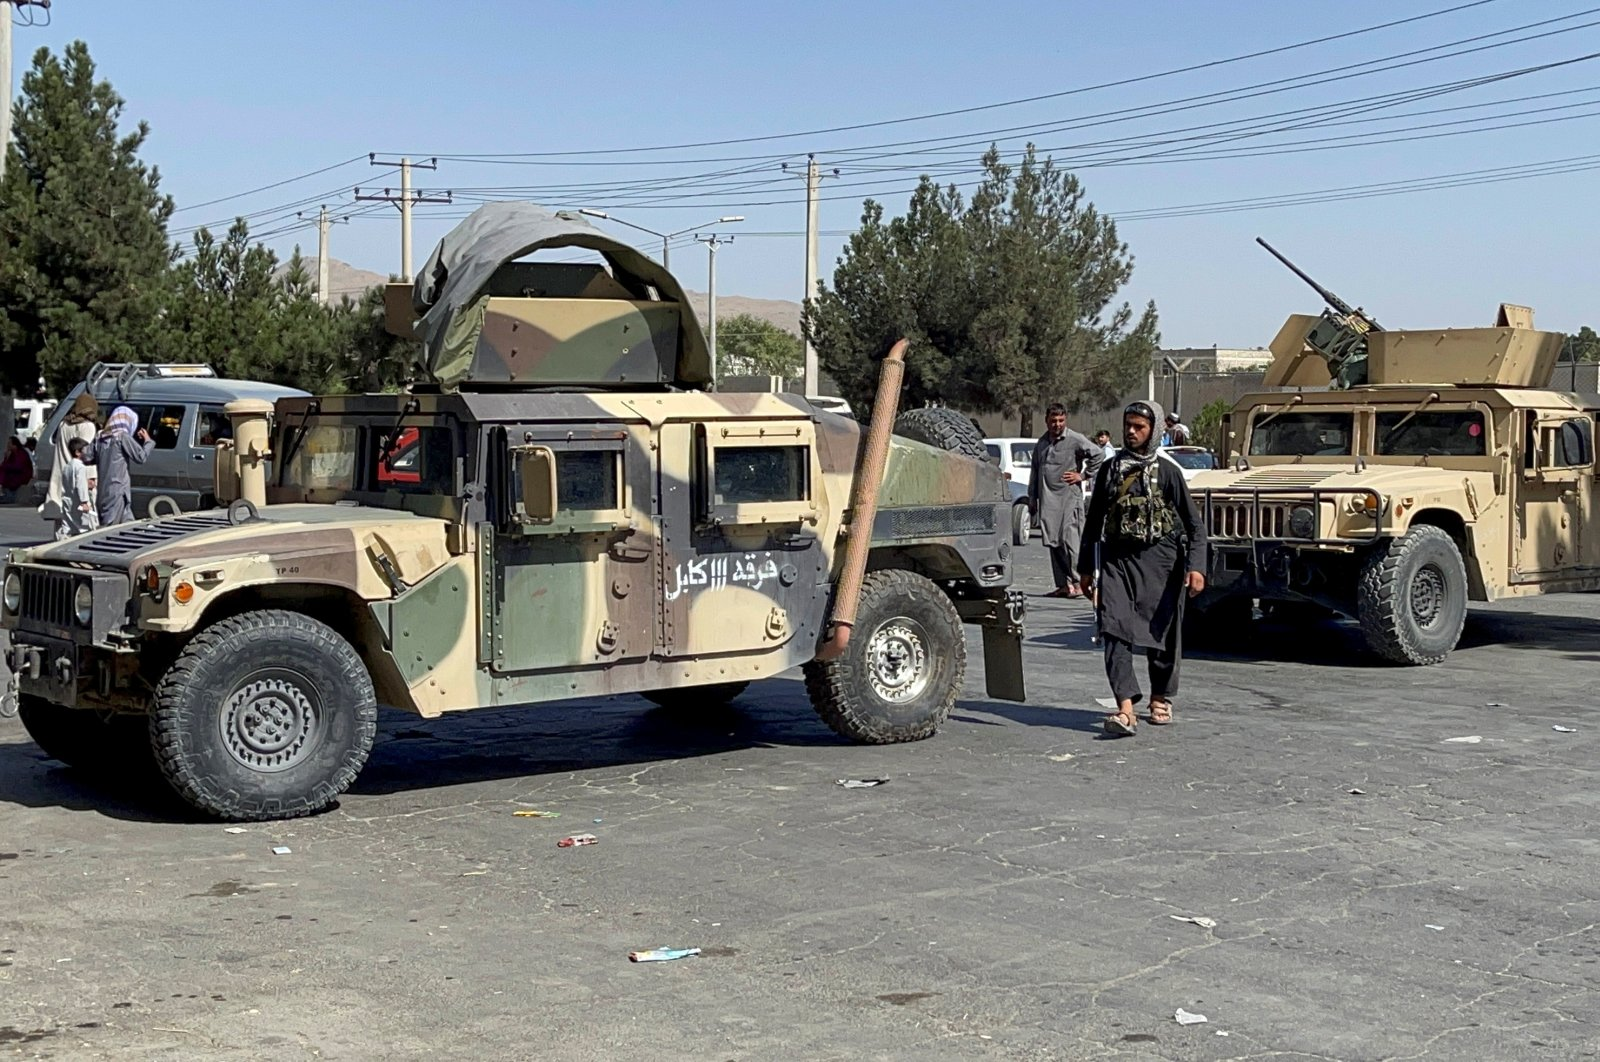 Taliban forces block the roads around the airport in Kabul, Afghanistan, Aug. 27, 2021. (Reuters Photo)